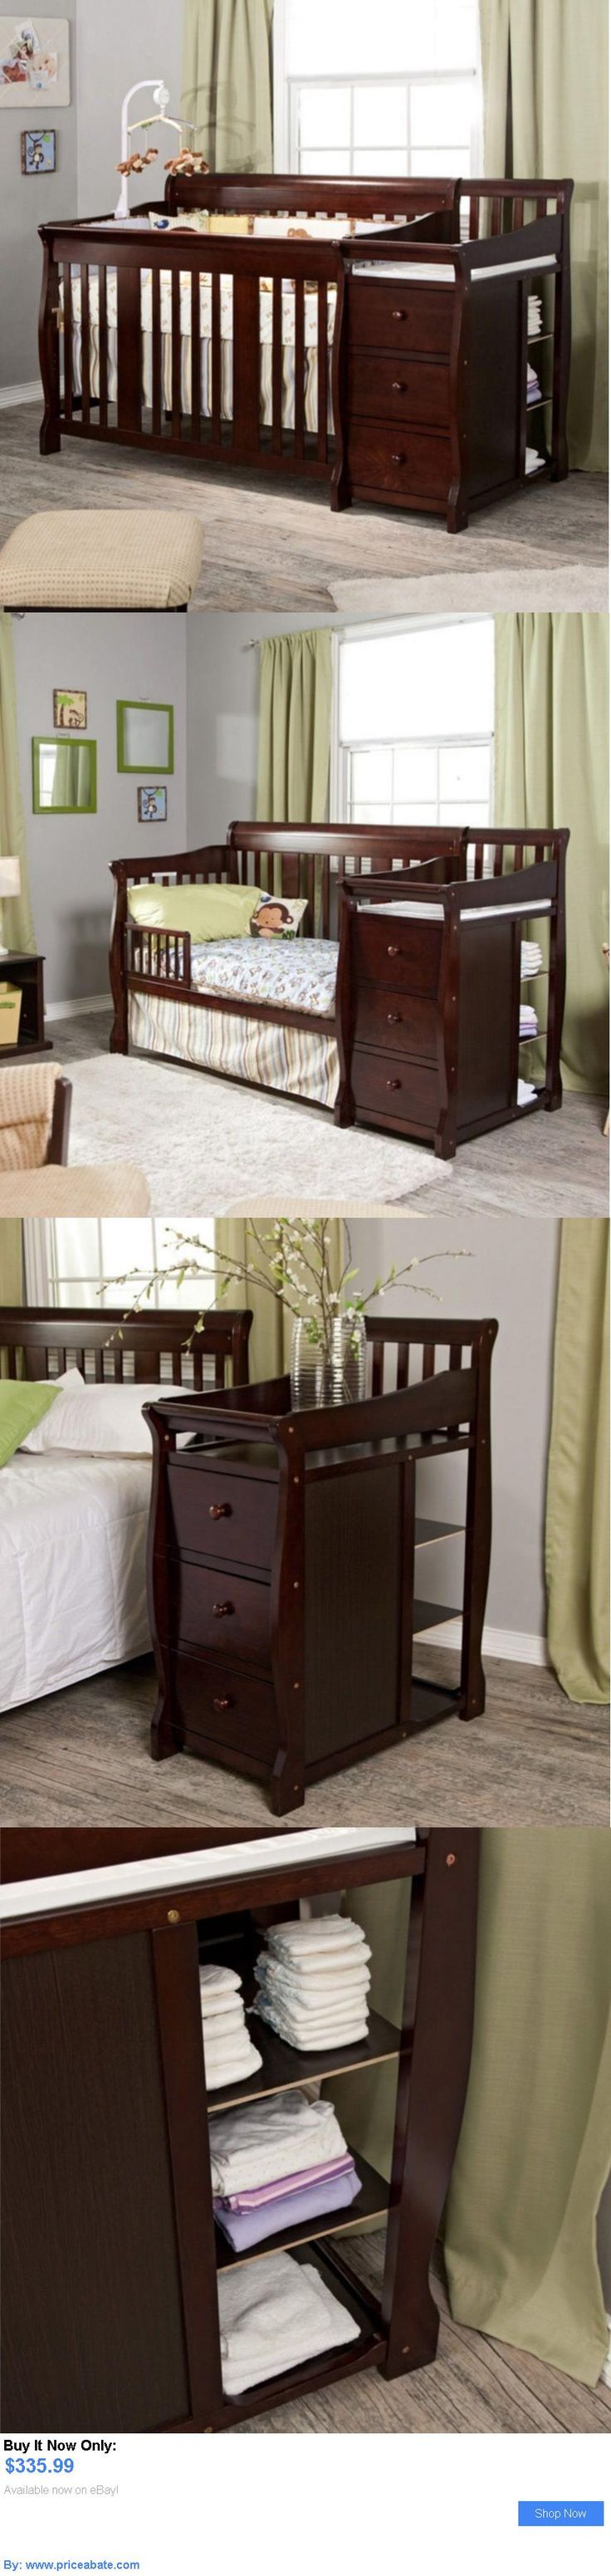 Unfinished crib for sale - Baby Nursery Convertible Baby Crib 4 In 1 With Changing Table Espresso Fixed Side Toddler